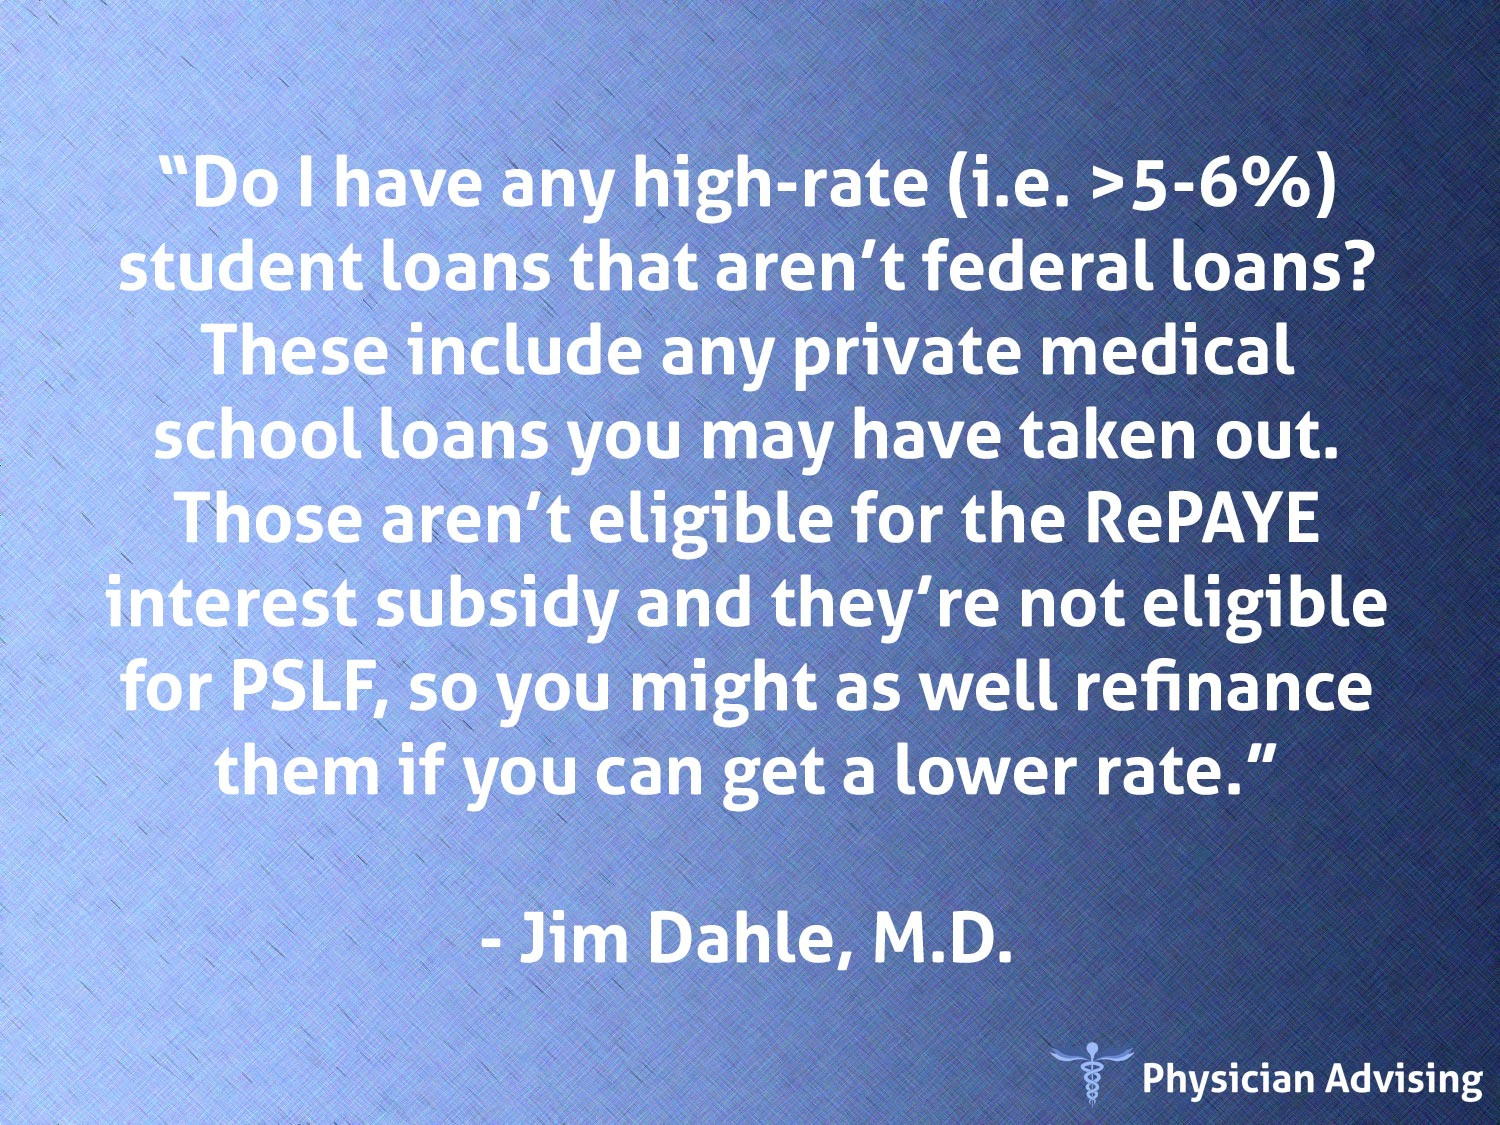 Physician Advising Quote 149 Fee Only Financial Advisor For Doctors